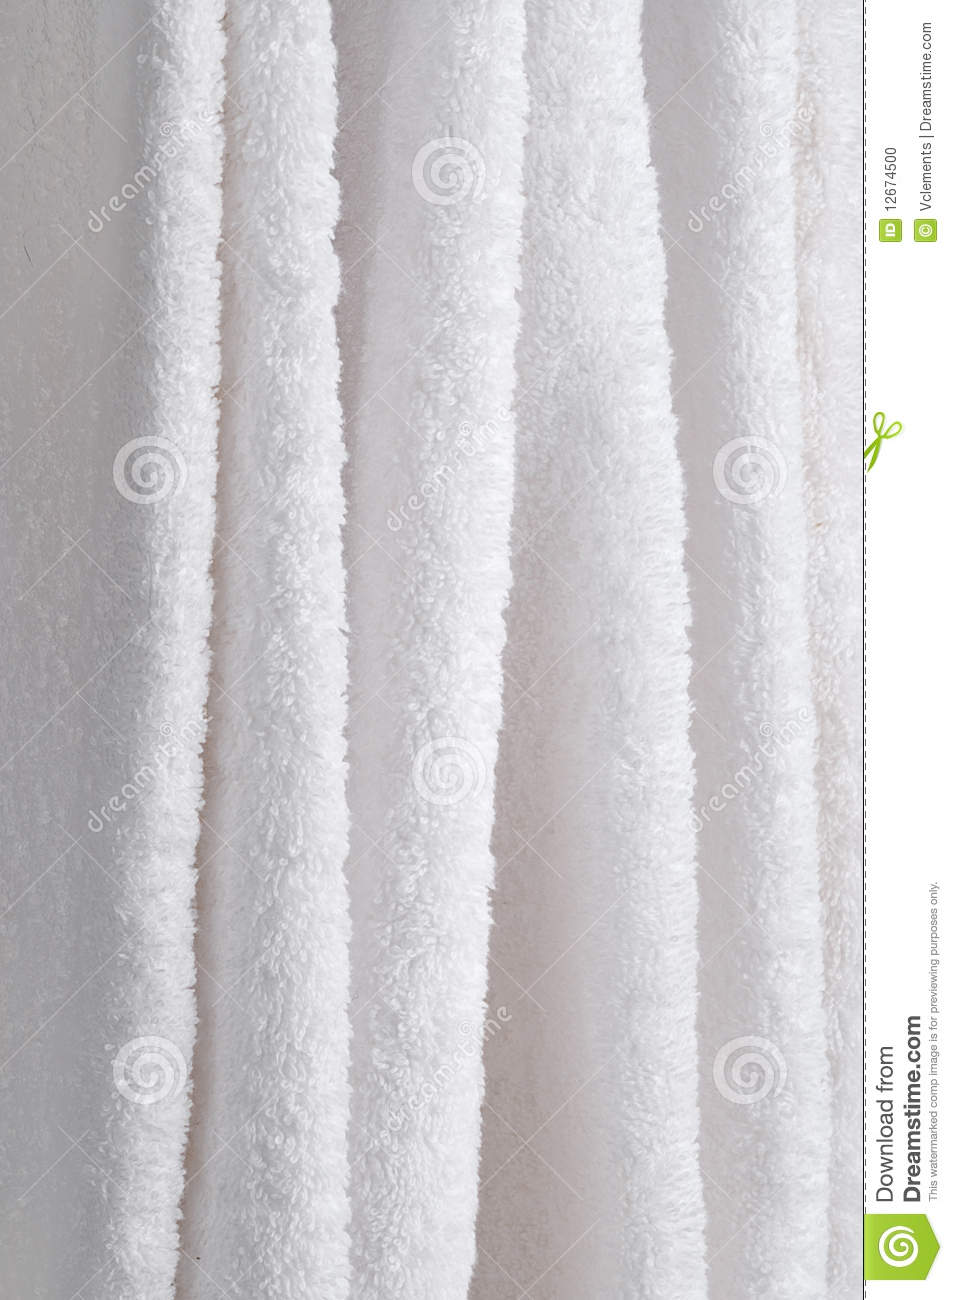 Close Up Of Hanging White Towels Stock Photo - Image: 12674500